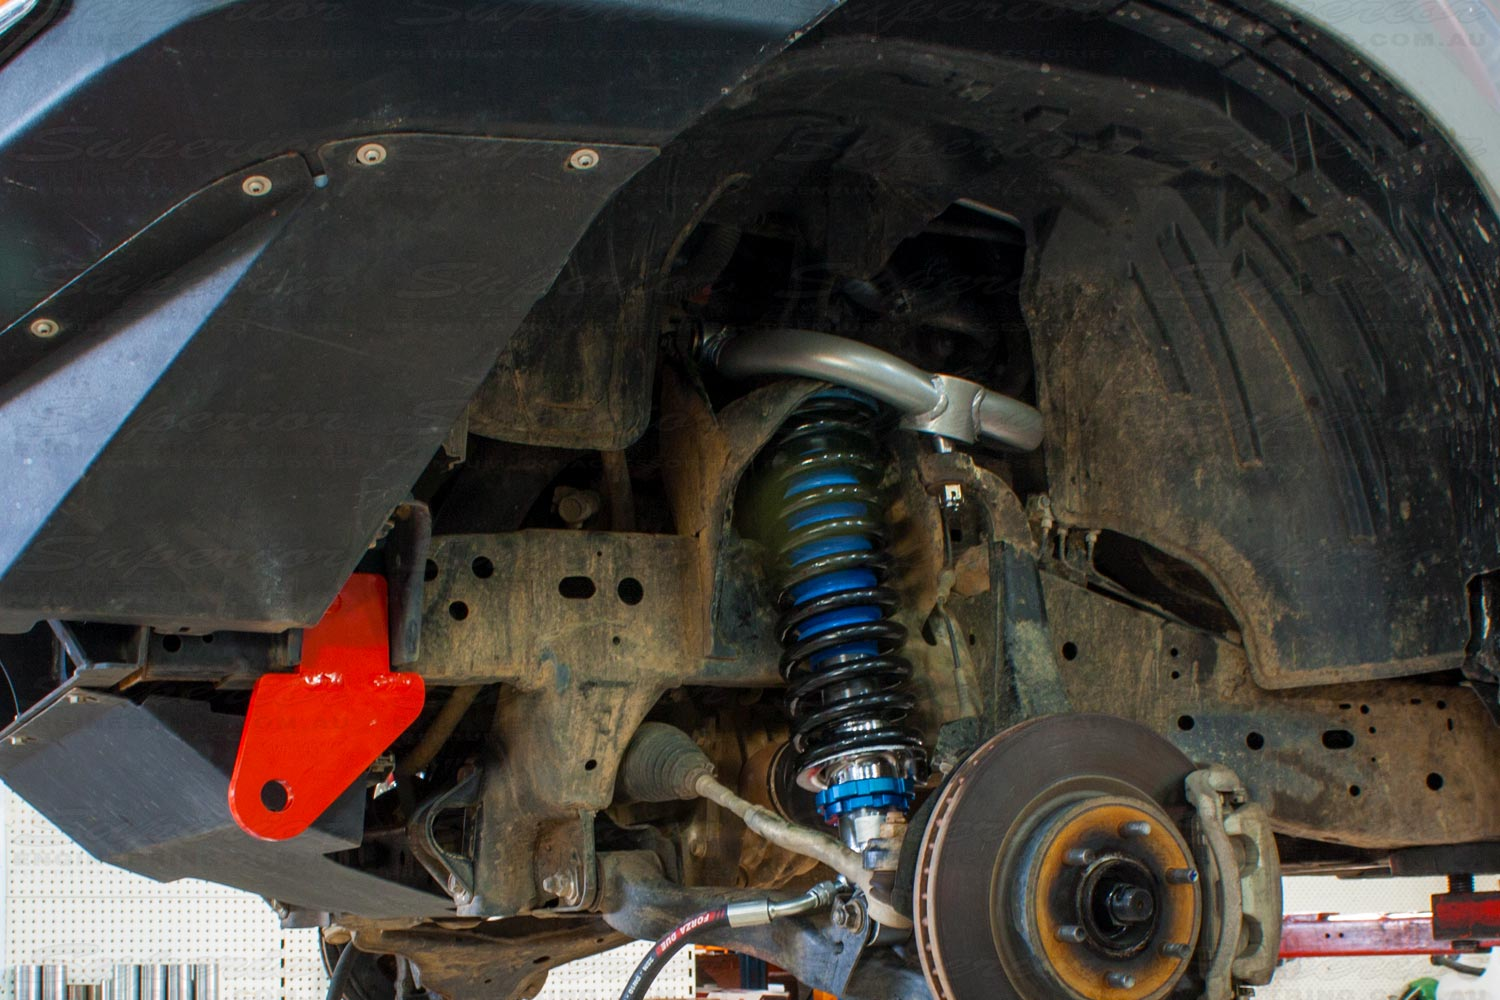 Closeup view of a single heavy duty rated towing point, upper control arm, strut and coil spring fitted to the front end of a NP300 Nissan Navara